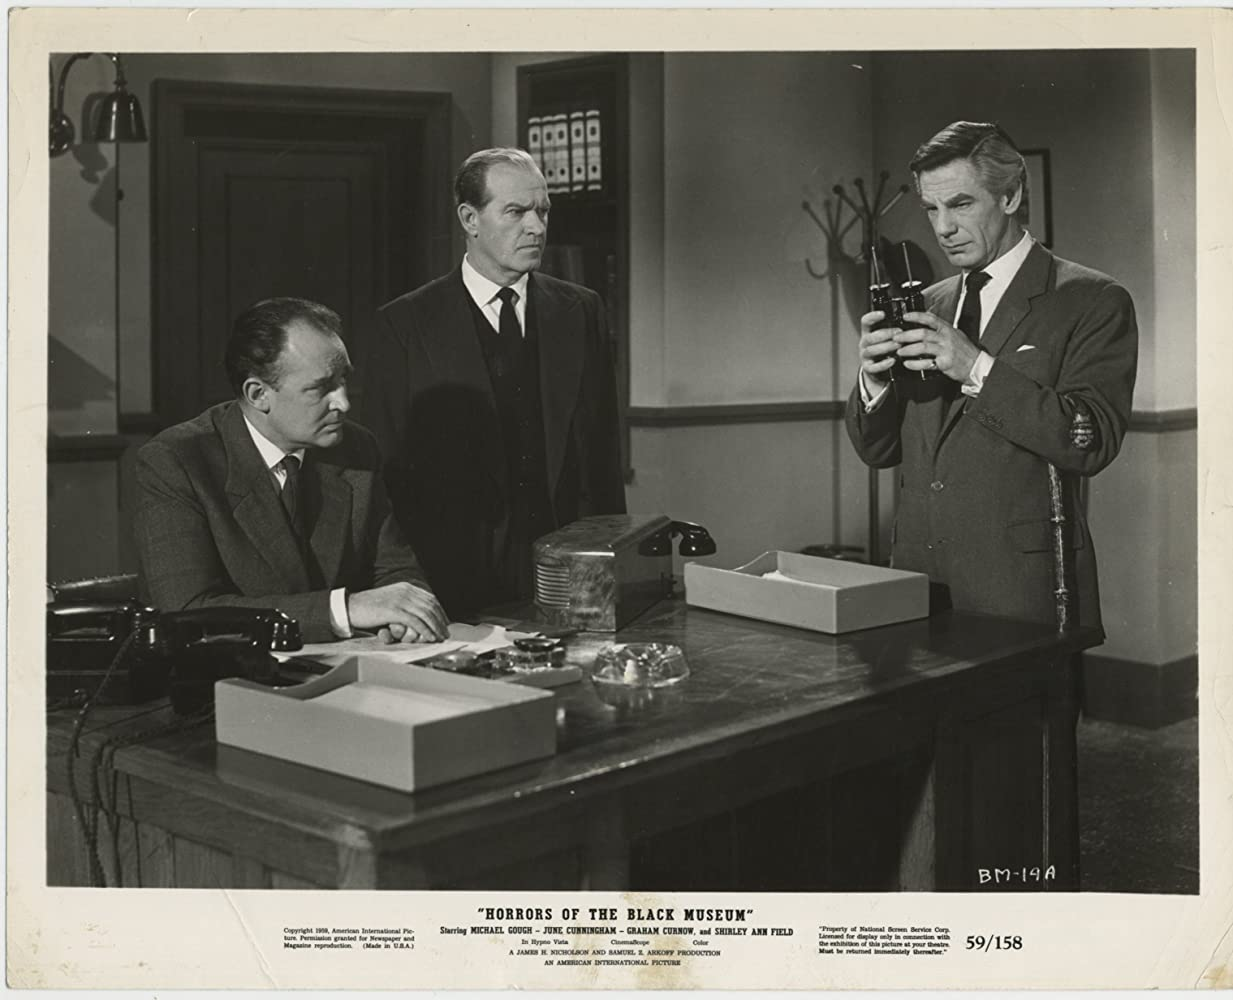 Michael Gough, Geoffrey Keen, and John Warwick in Horrors of the Black Museum (1959)